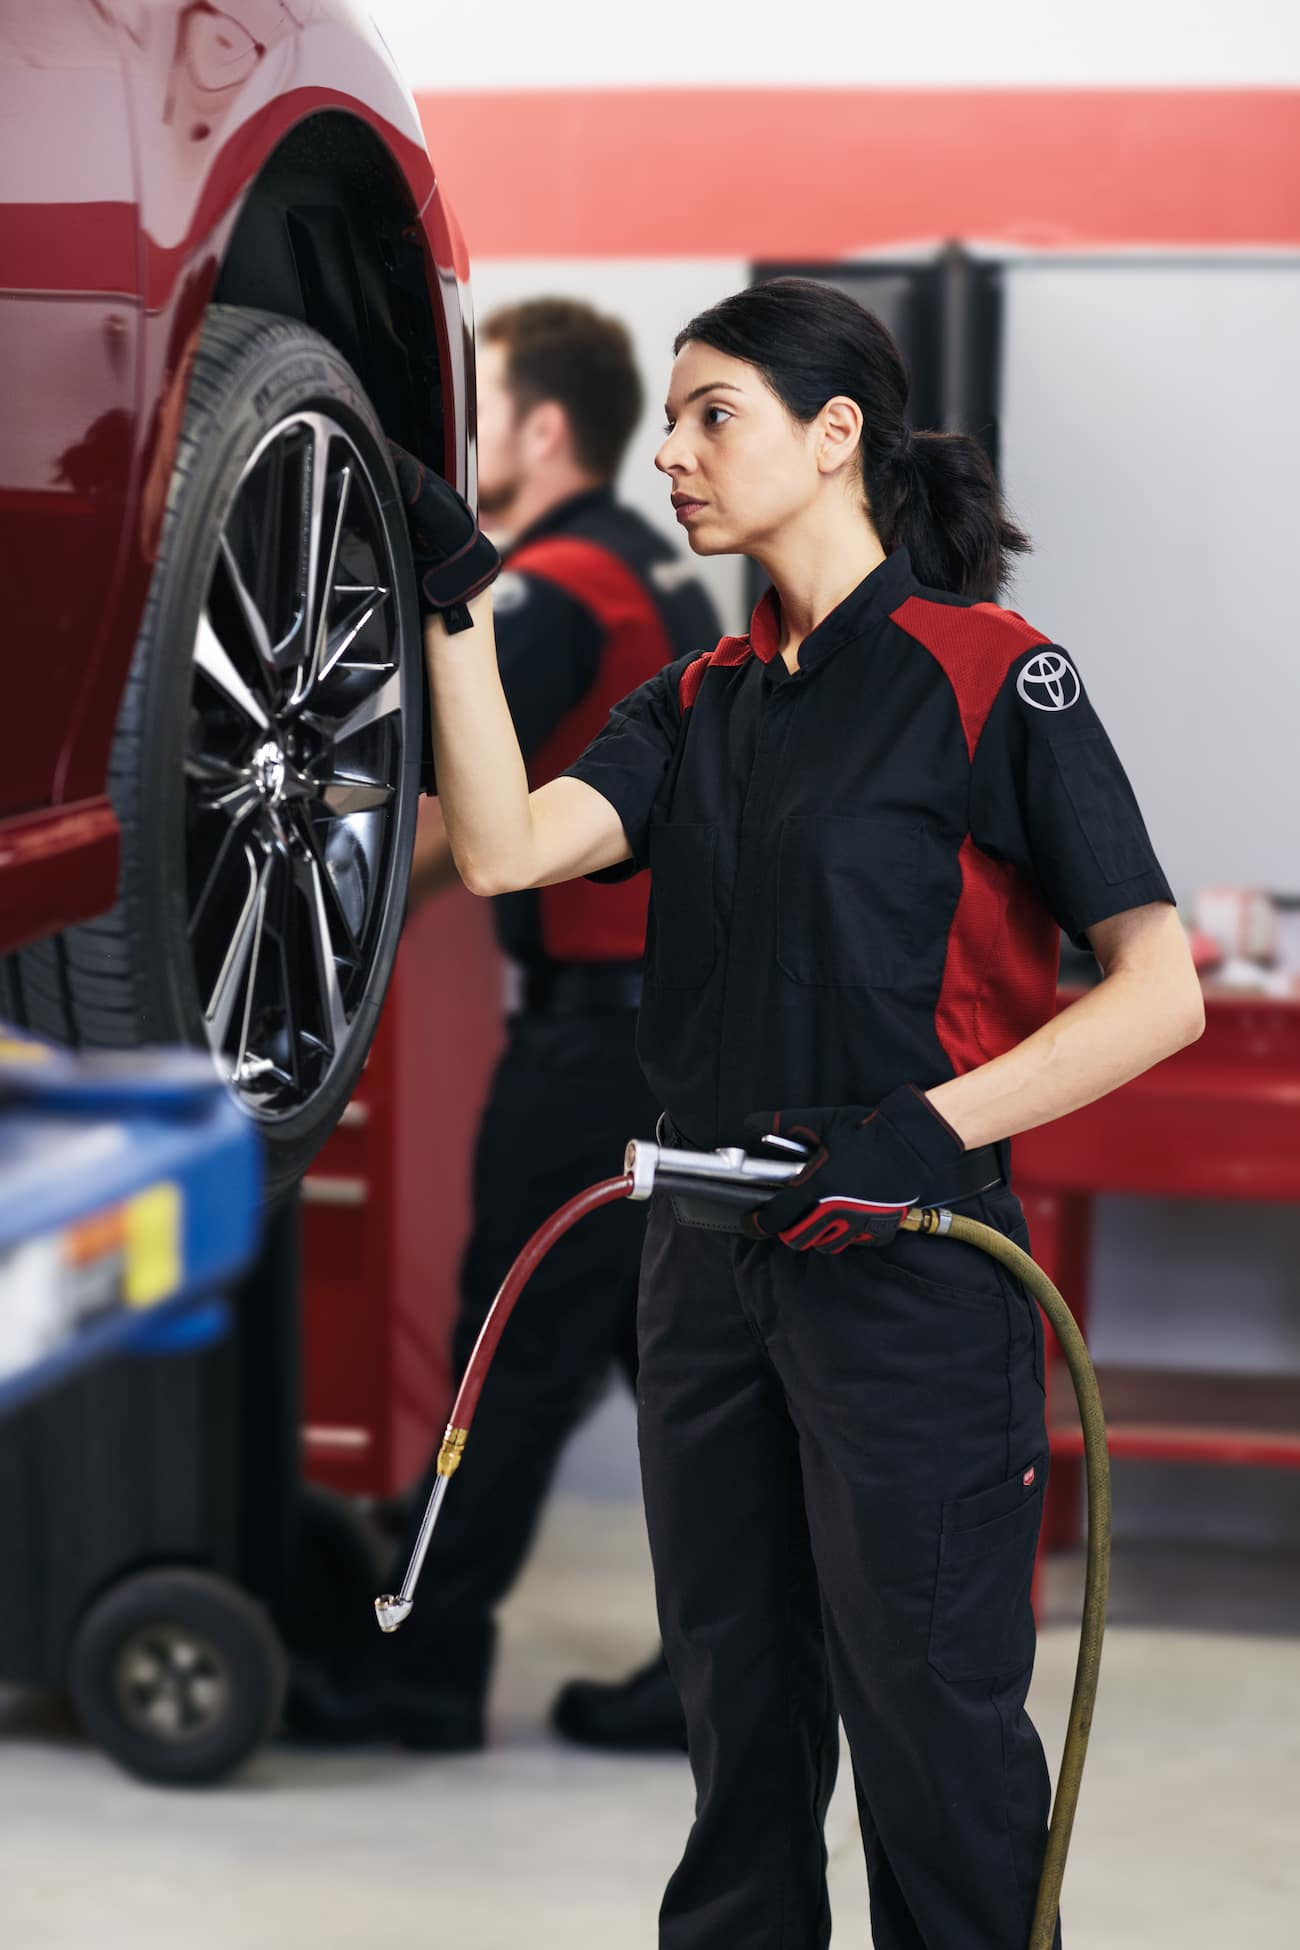 How to check your tires' health at Hanover Toyota | Technician checking car tire